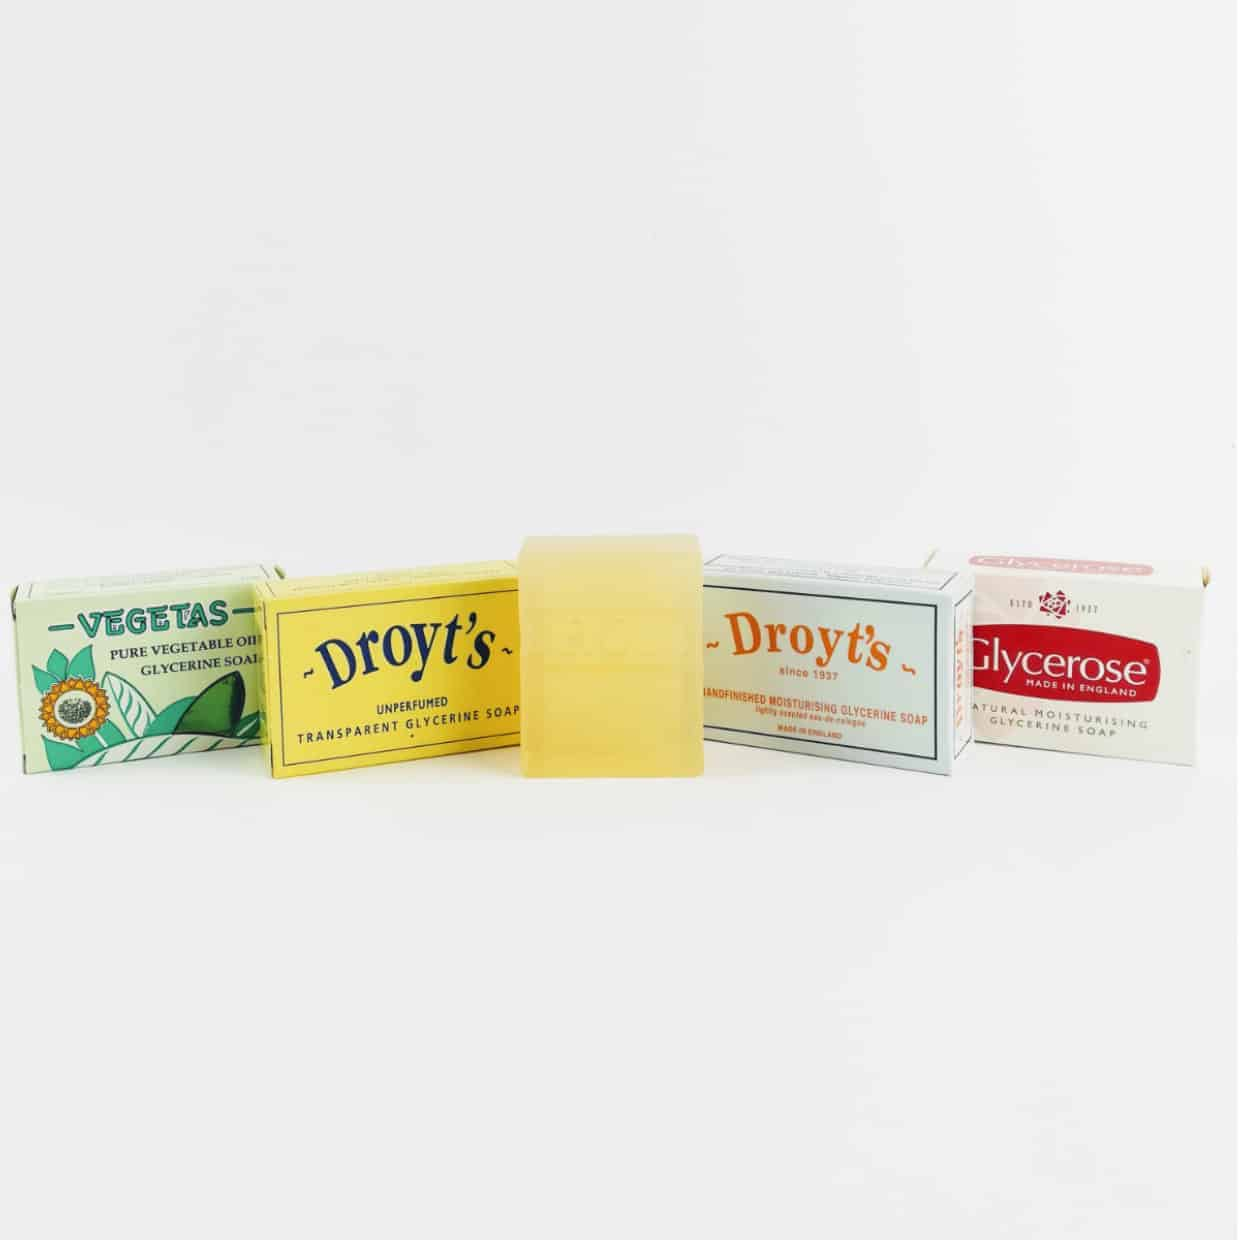 Droyts soap collection 1240x1240